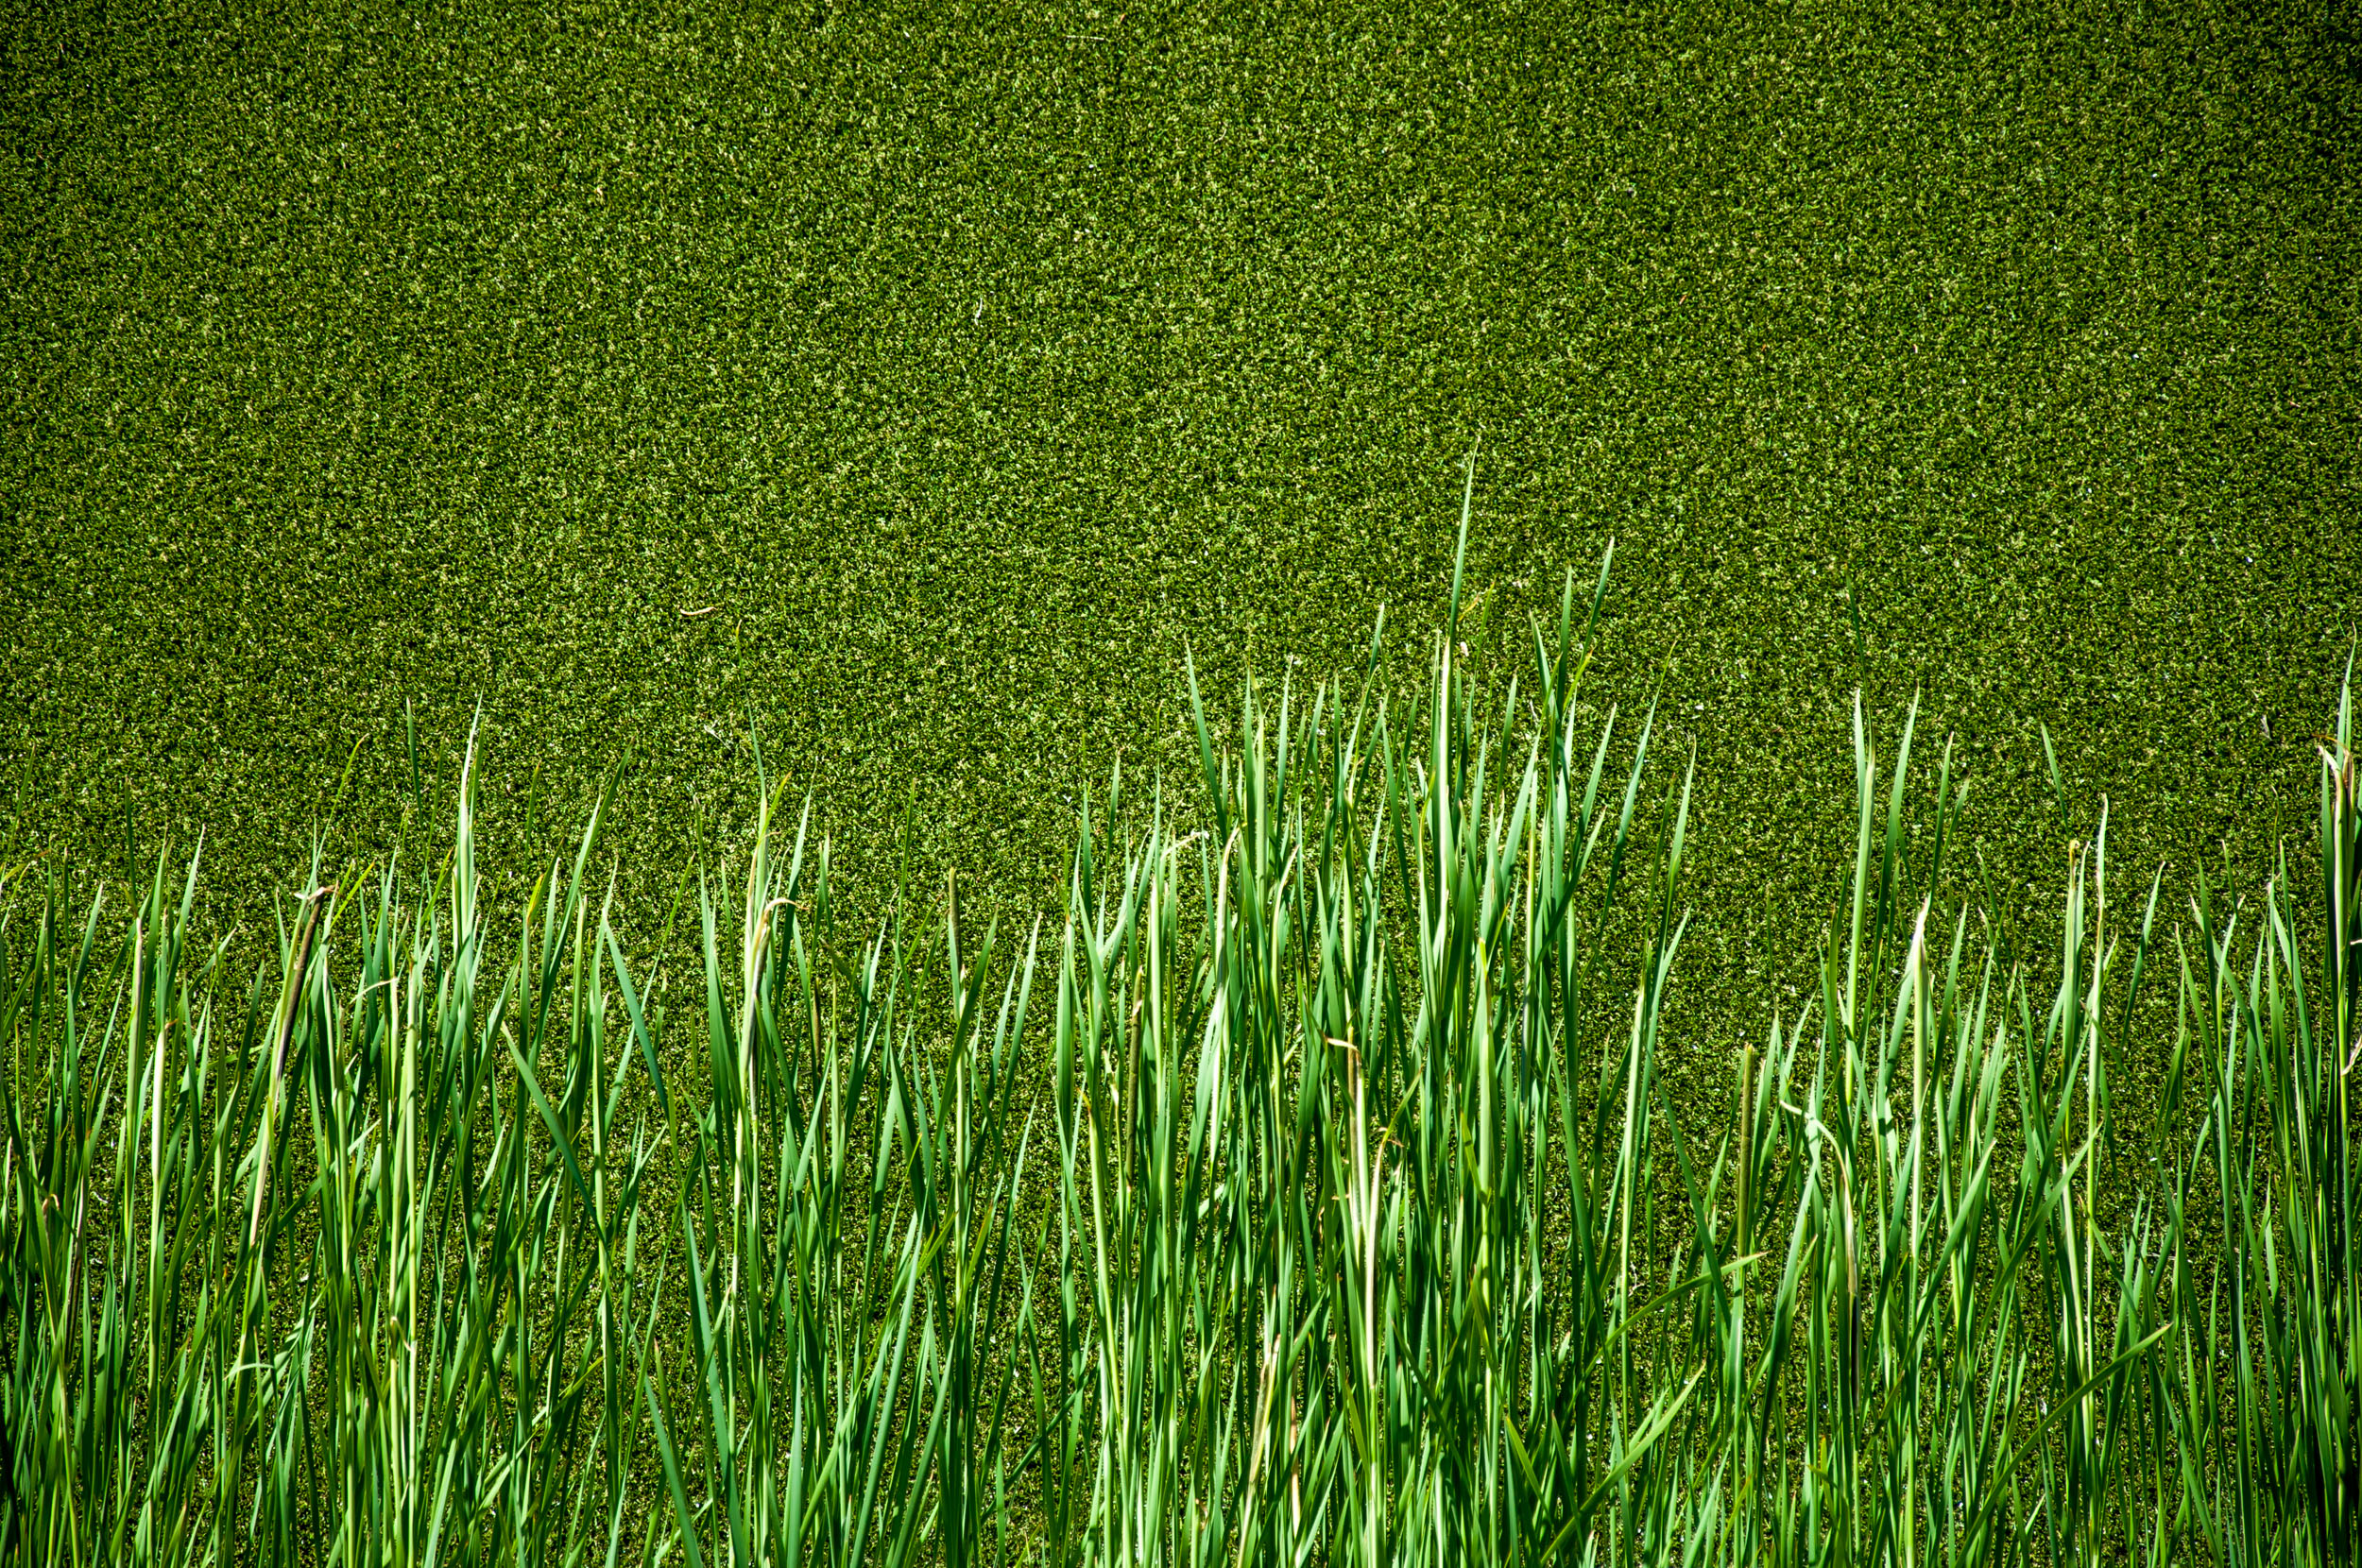 Green grass, Abstract, Lawn, Lifestyle, Lush, HQ Photo